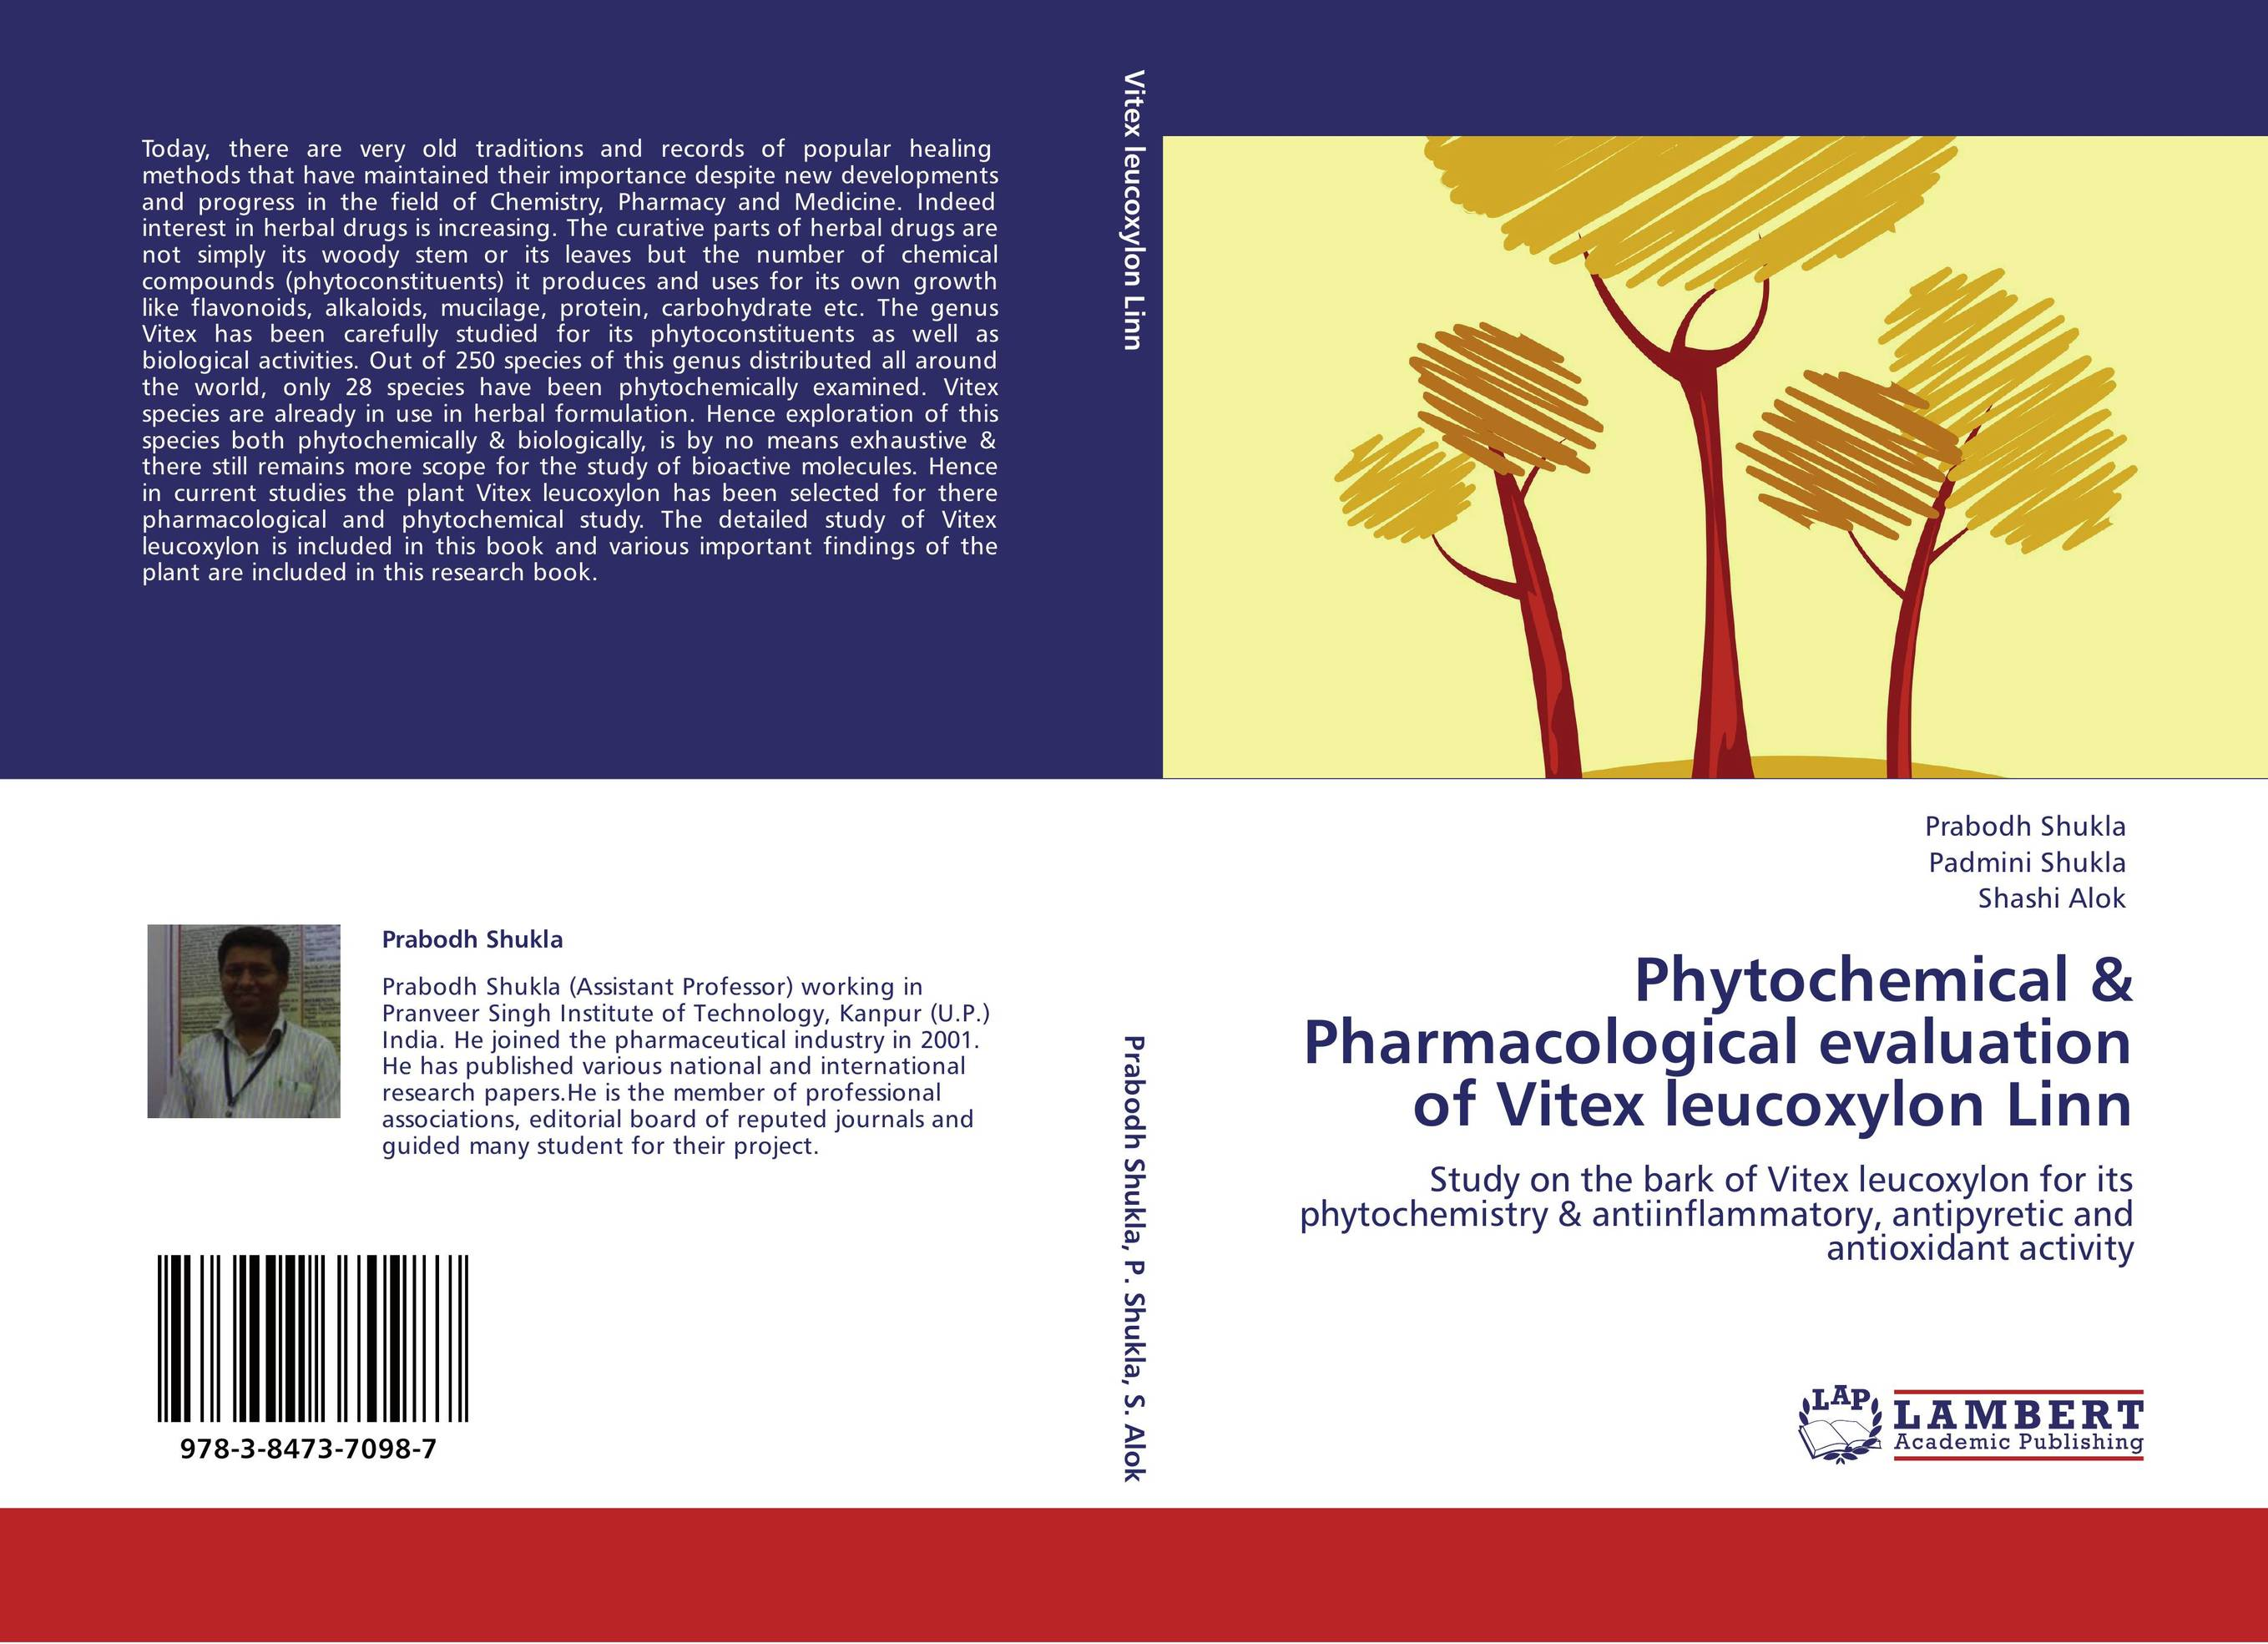 antioxidant research paper Basic research provides a plausible mechanism by which antioxidants might reduce the risk of atherosclerosis a large number of descriptive, case-control and cohort studies provide data suggesting that consumption of antioxidant vitamins is associated with reduced risks of cardiovascular disease.